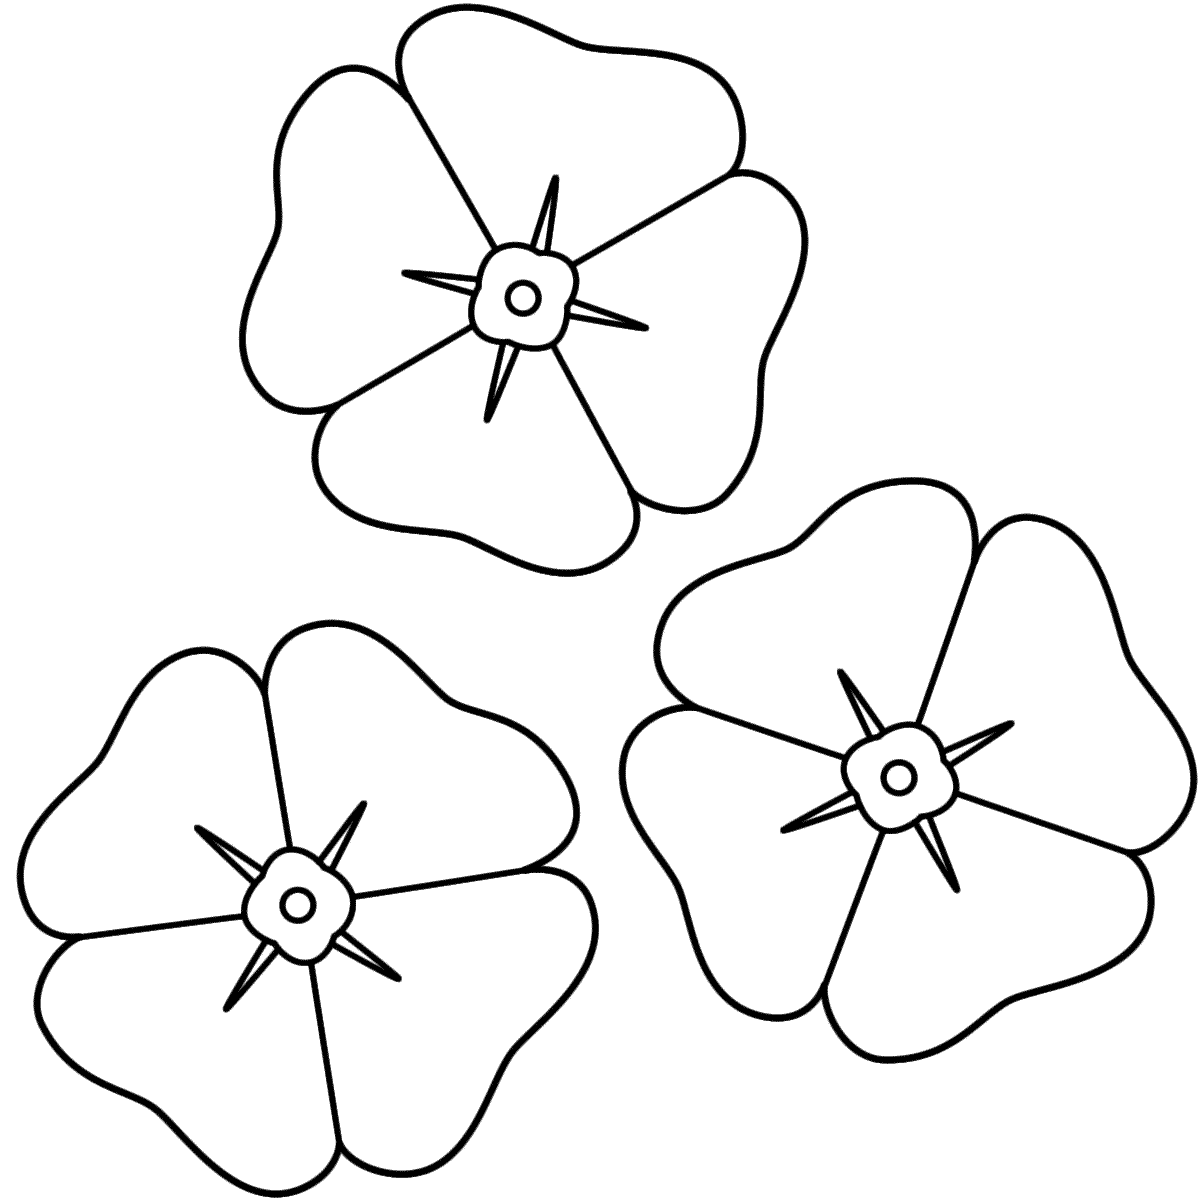 Coloring pages for donna flor - Outstanding Disney Mother S Day Coloring Pages On Inexpensive Article